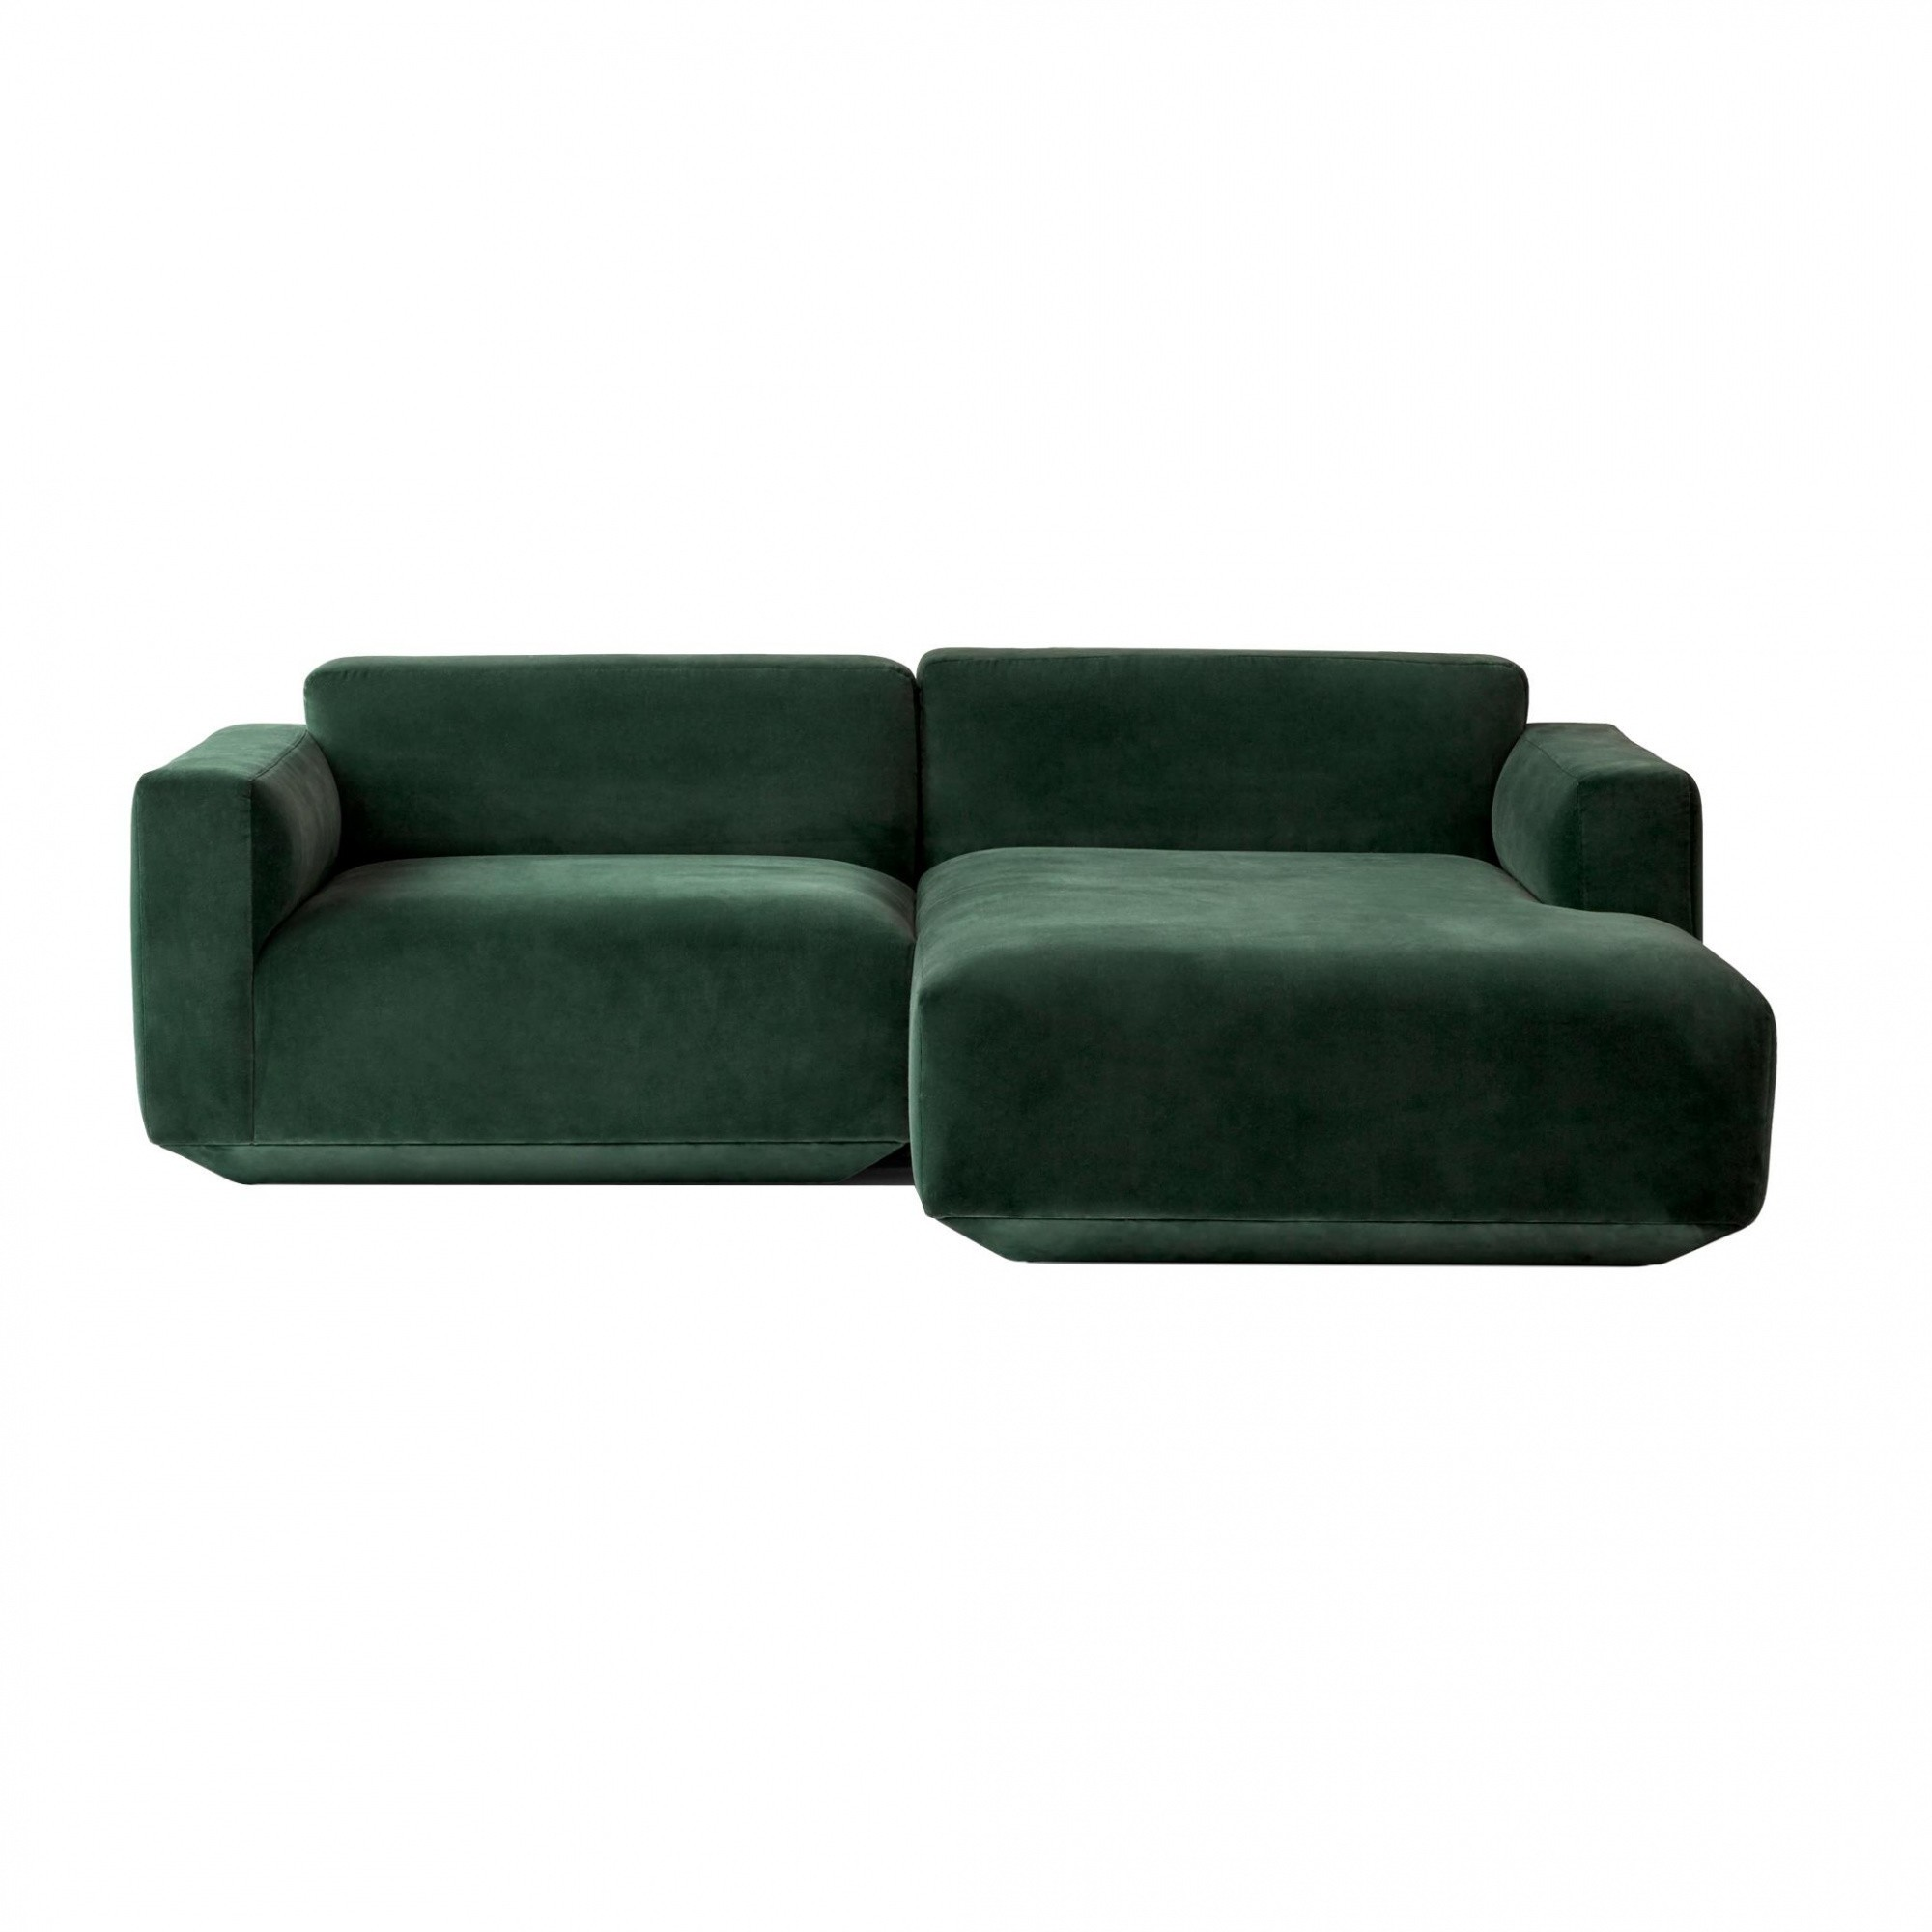 Tradition Develius 2 Seater Sofa With Chaise Longue Ambientedirect